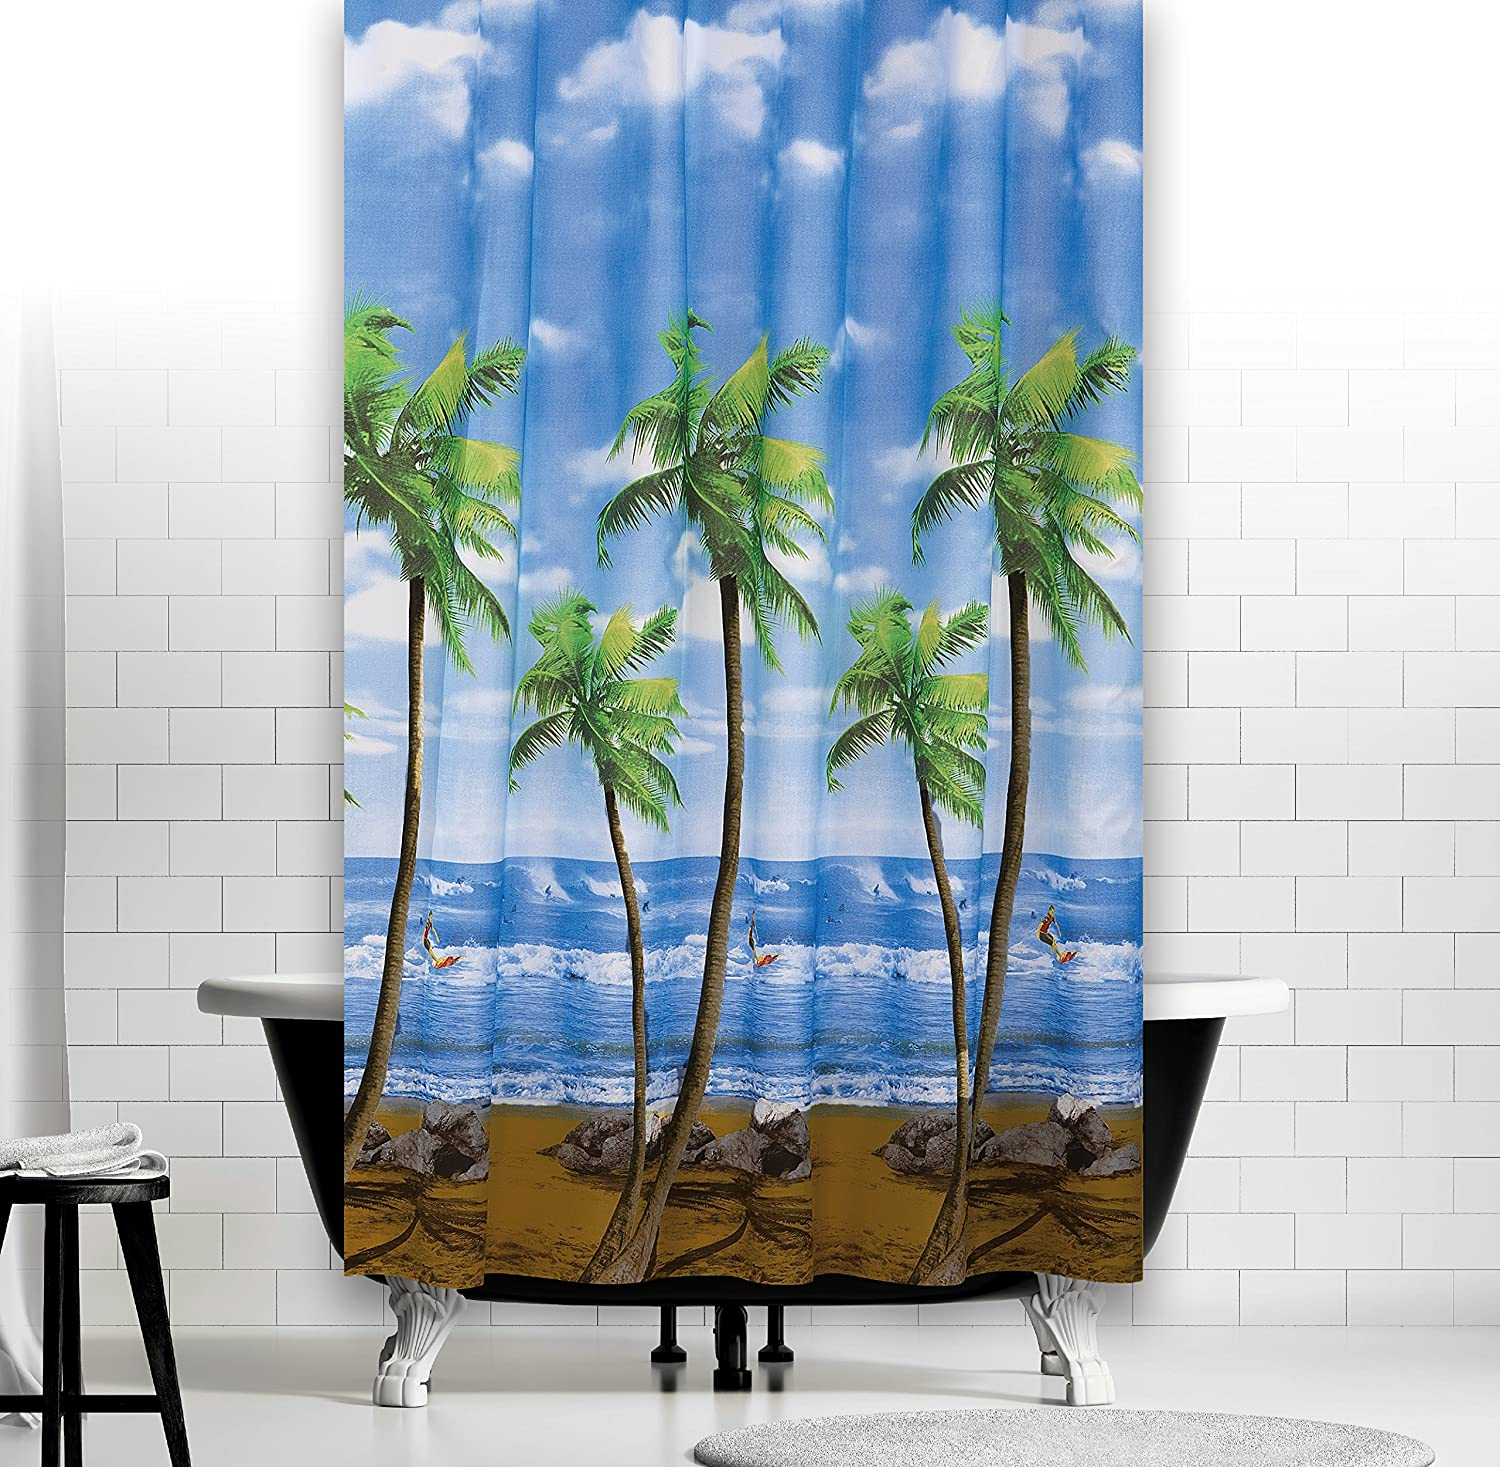 Bathroom Shower Curtain Extra Long and Wide - 240CM Wide by 200CM ...